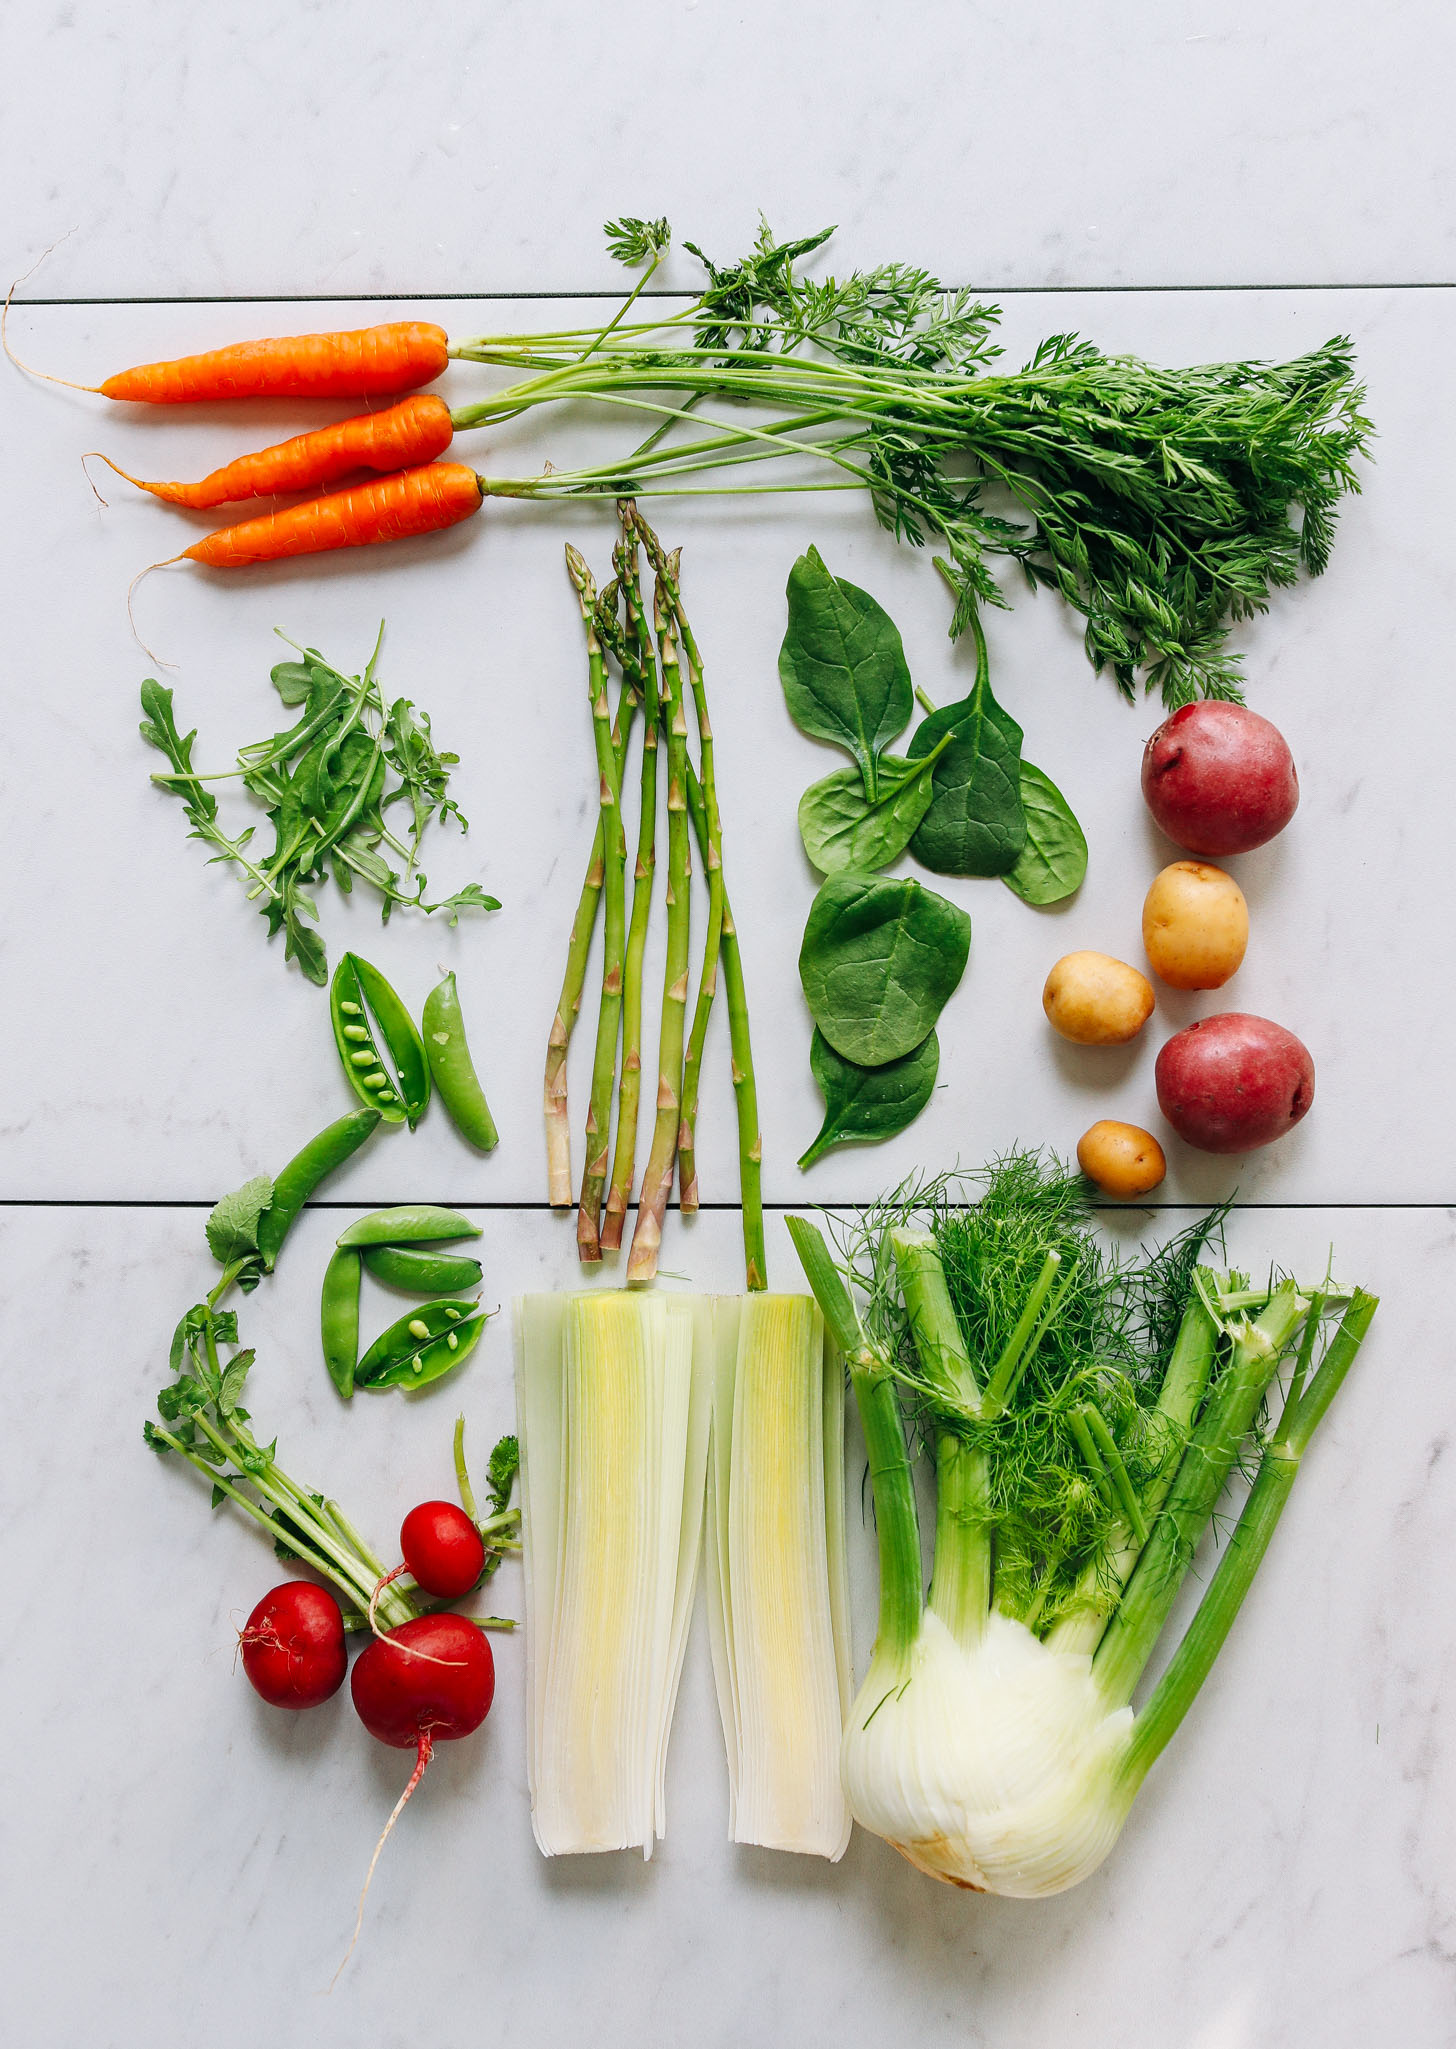 Assortment of spring vegetables including carrots, asparagus, spinach, potatoes, and more